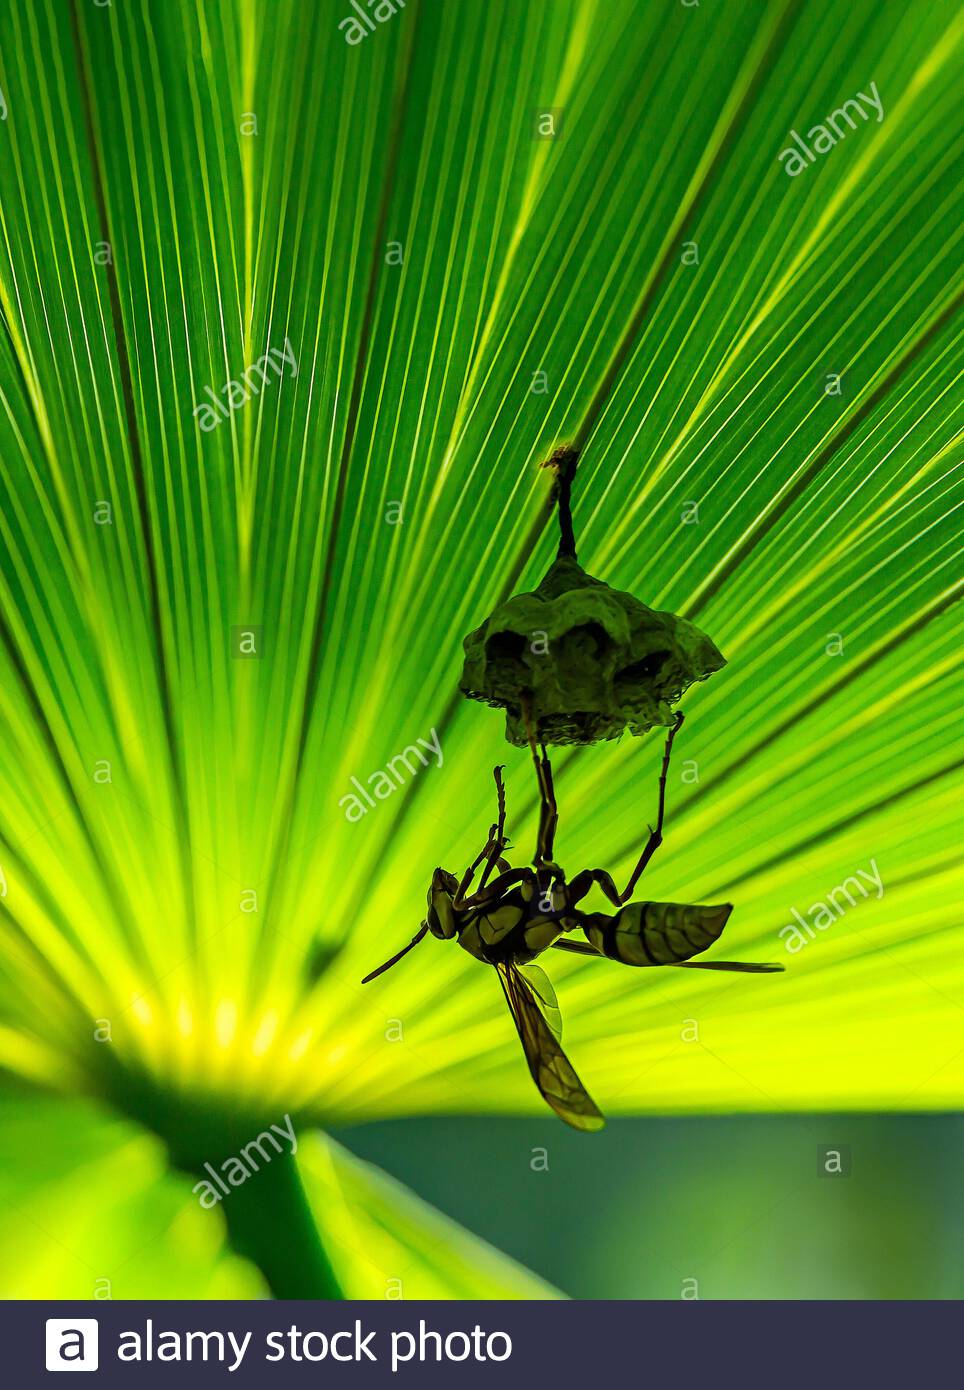 Polistes carnifex and nest in Mexico : vespid wasp native to Central and South America known as the executioner wasp for its extremely painful sting Stock Photo